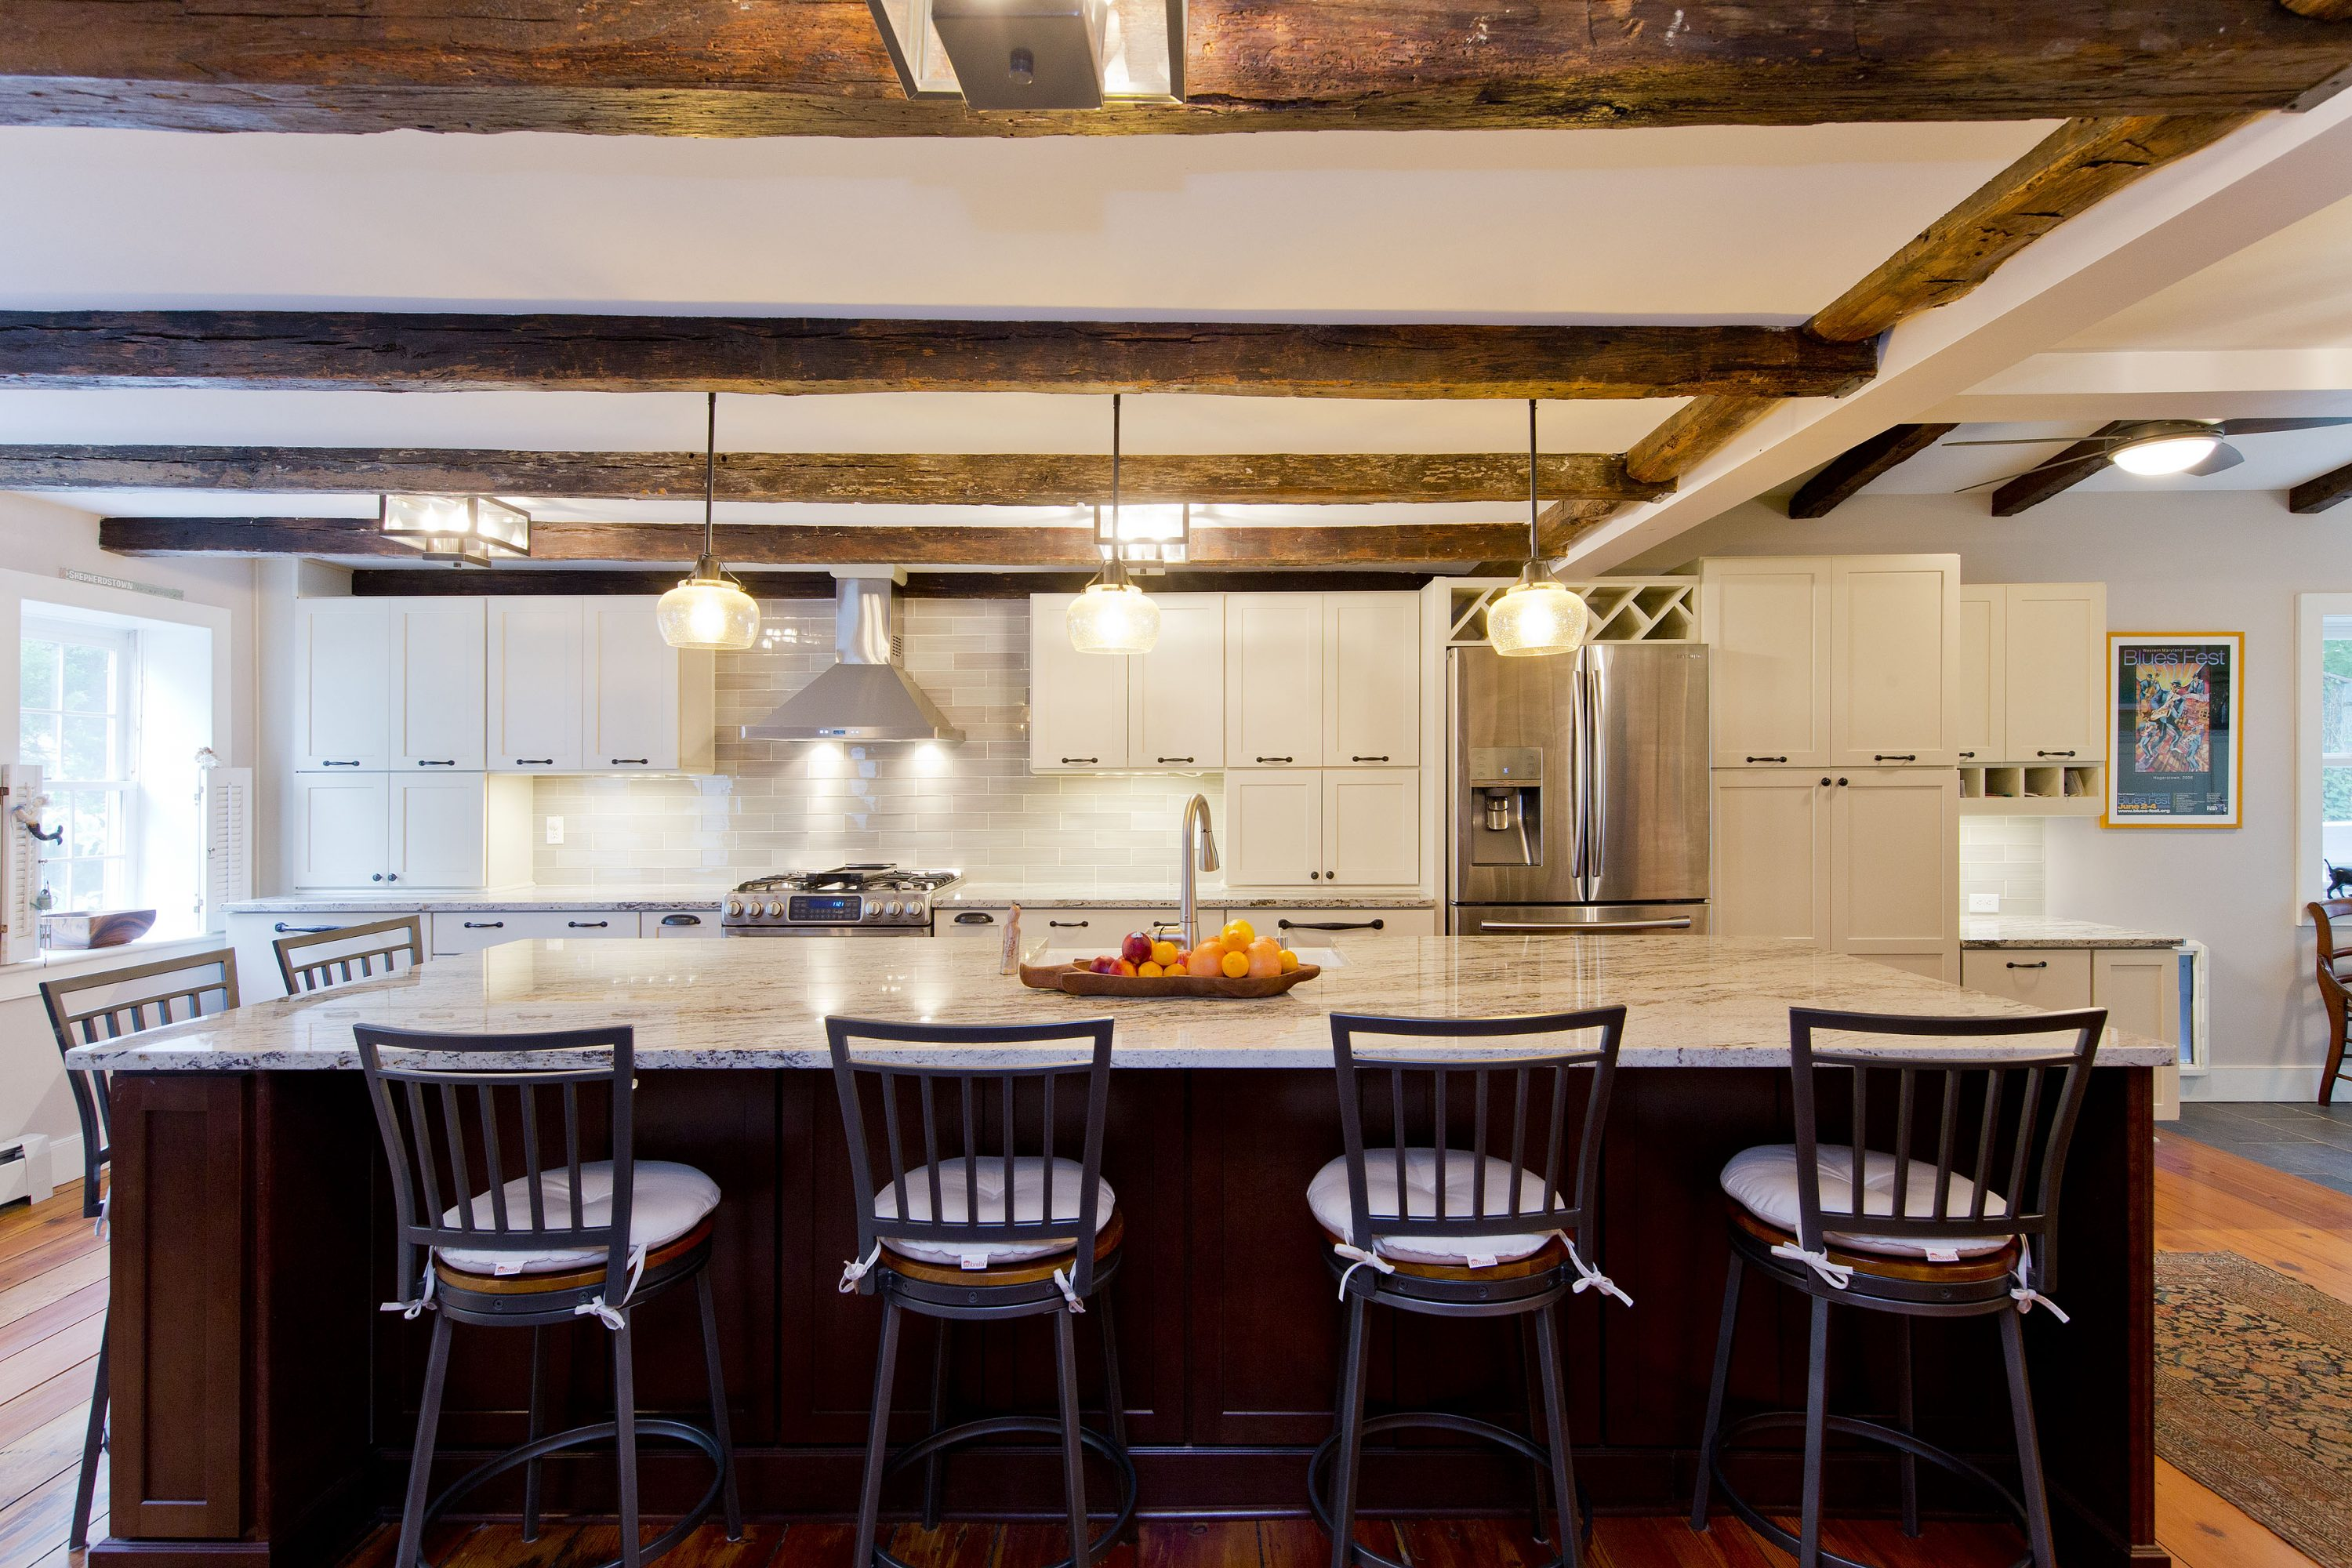 Award Winning Historic Renovation kitchen island